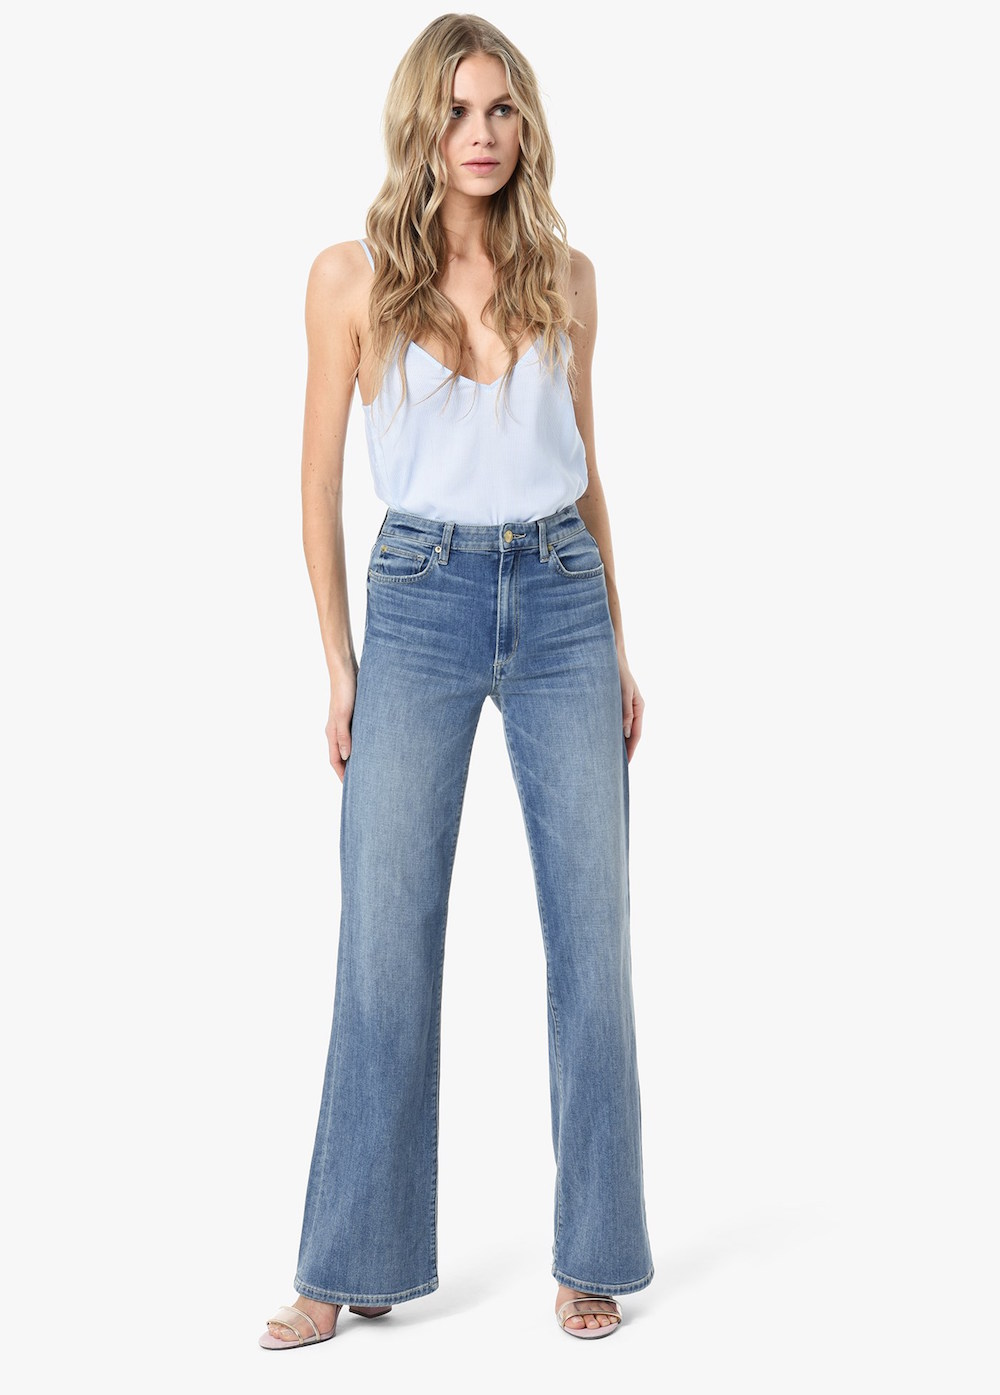 89c6814e Best High-Waisted Jeans for Every Body Type - theFashionSpot